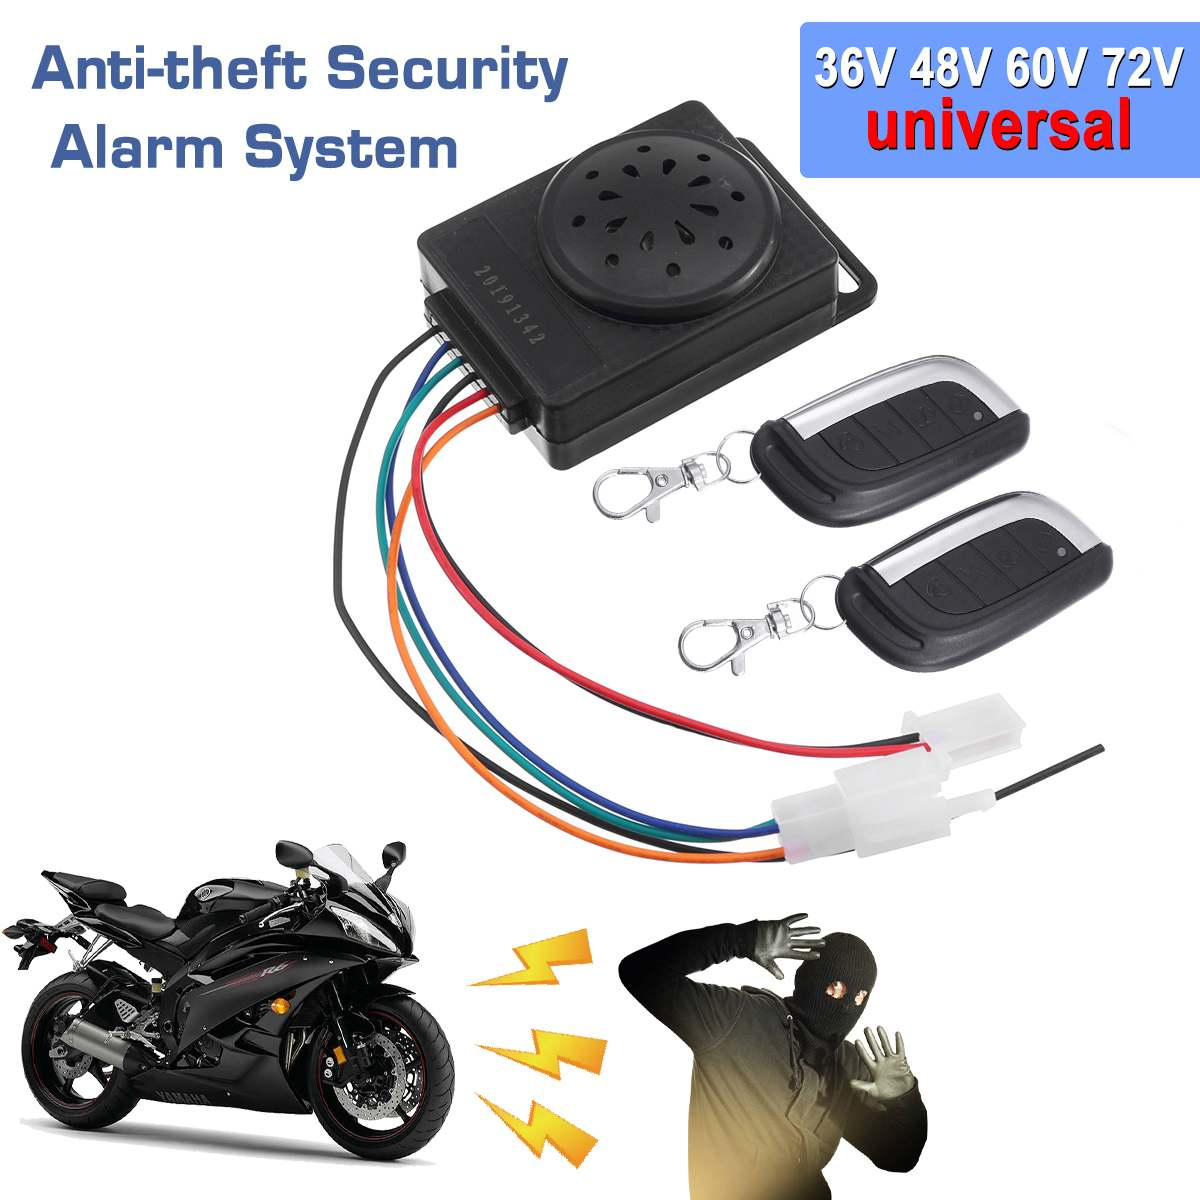 36V 48V 60V 72V Universal Two Way Motorcycle Alarm System Scooter Anti-theft Security Alarm System With Remote Control